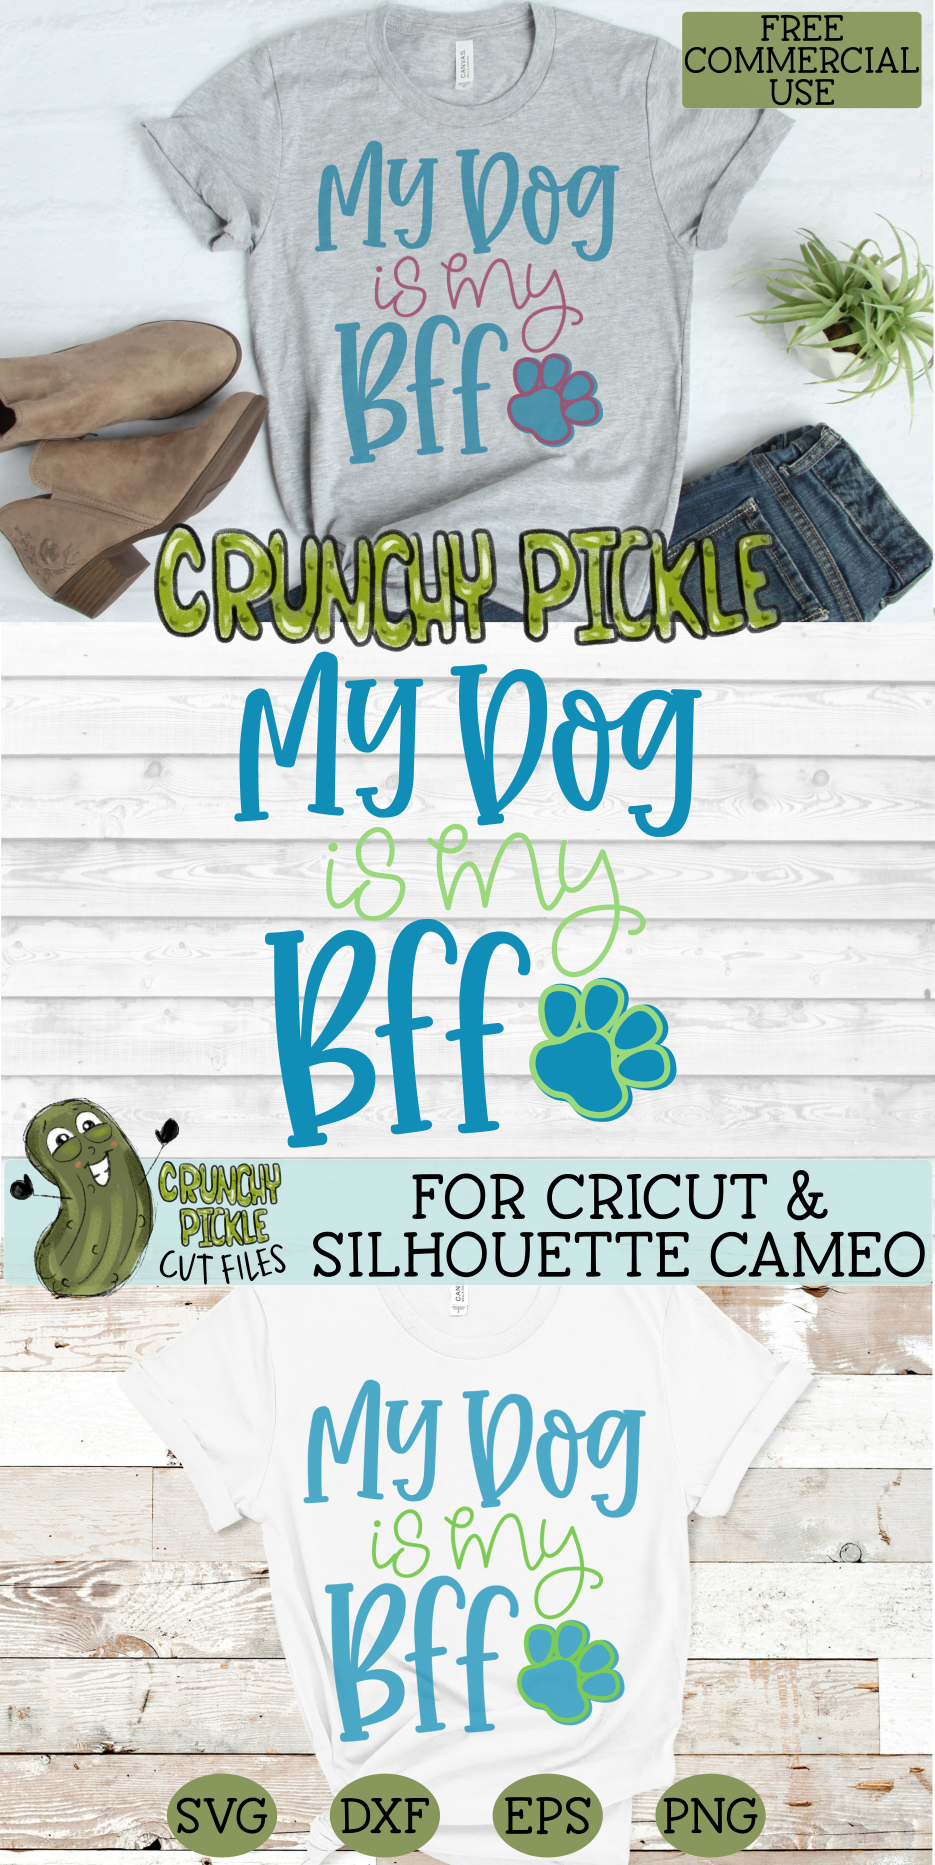 My Dog is my BFF SVG Cut File example image 4